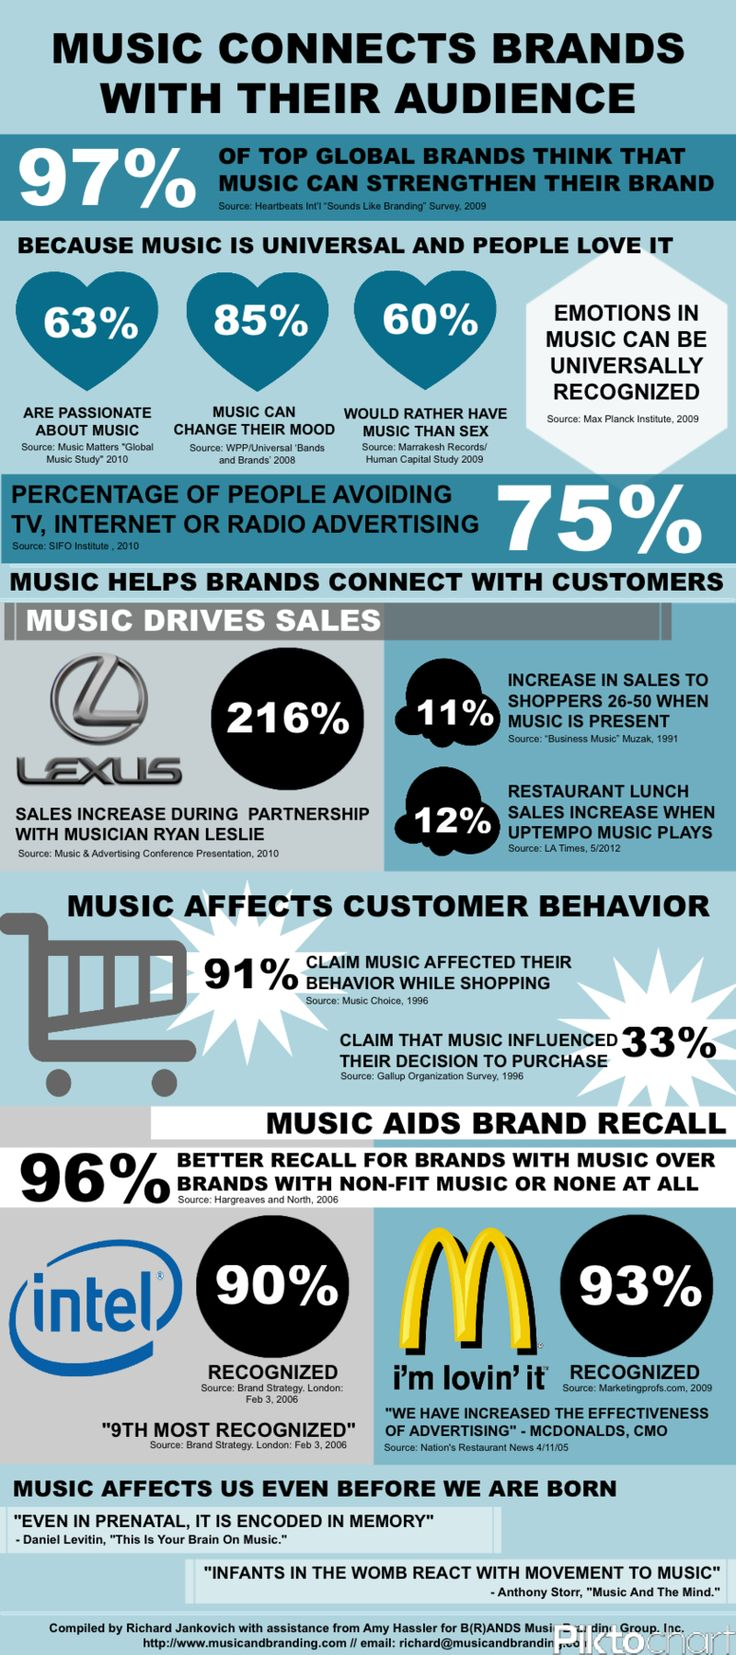 Best 8 sound music images on pinterest infographic social media how can music connect brands with their audience infographic fandeluxe Images